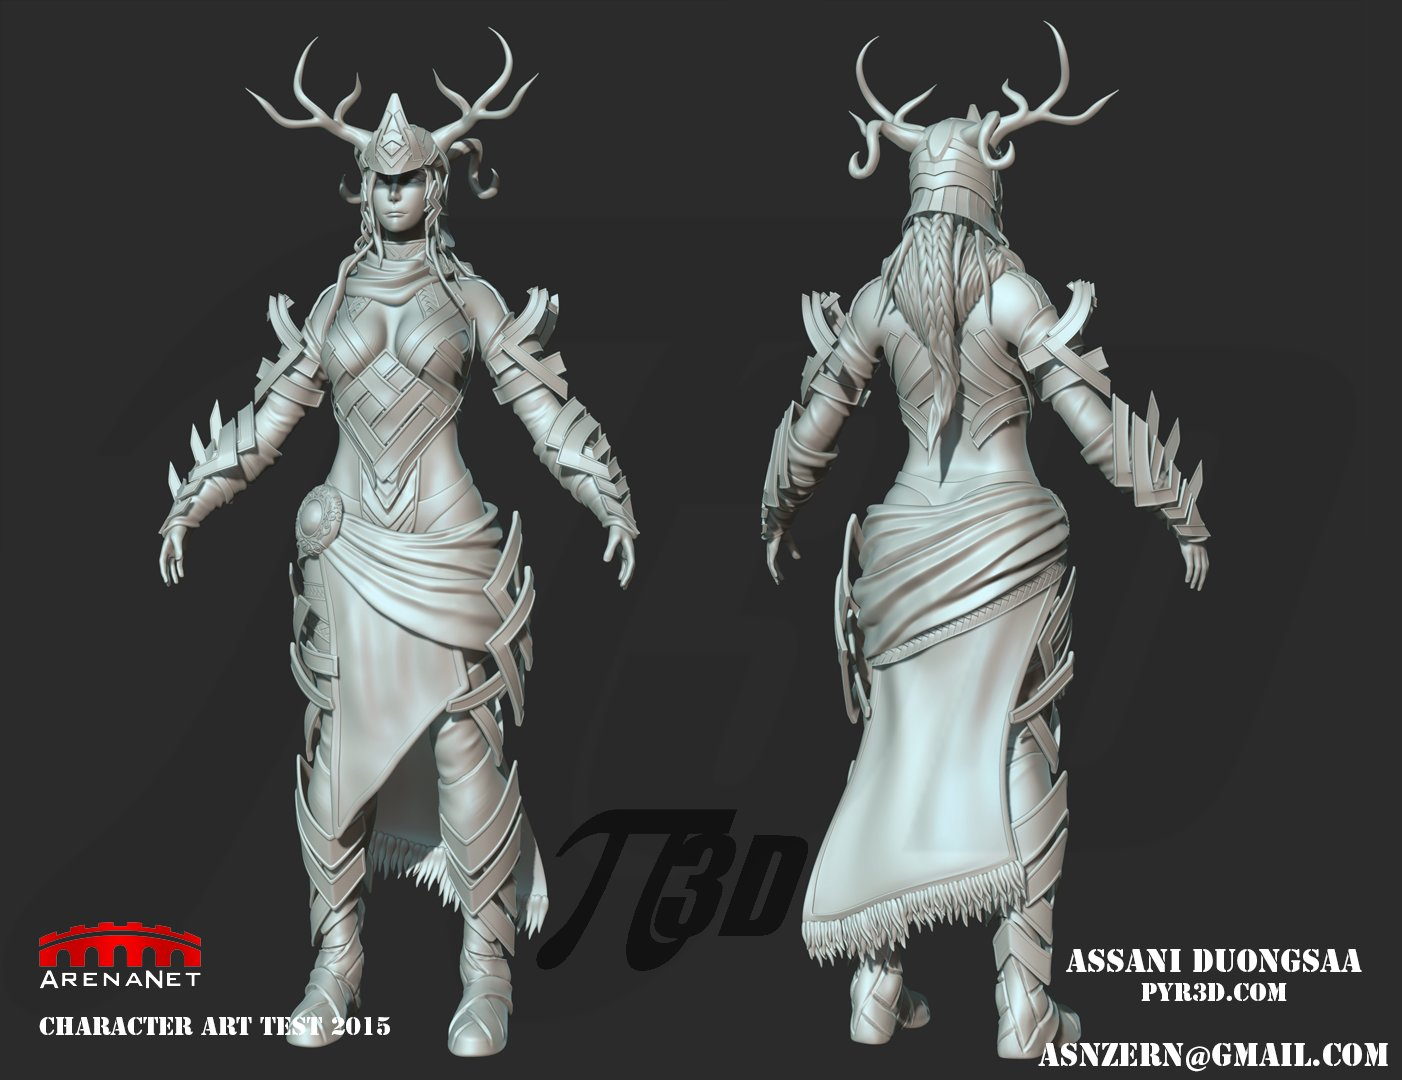 Assani duongsaa 2015 art test sculpt aduongsaa